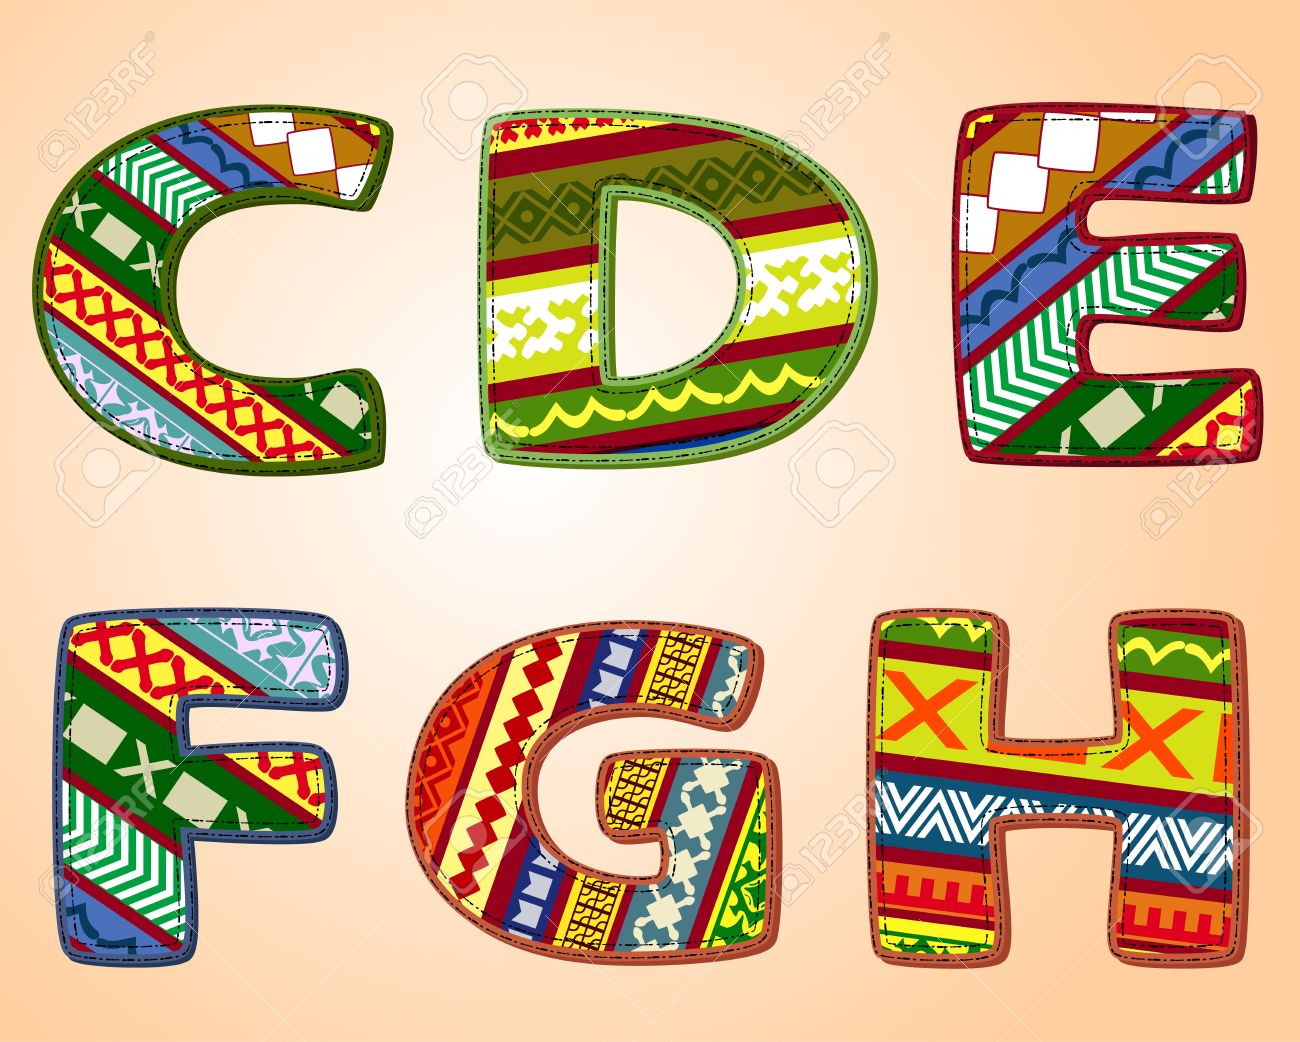 Letters of fabric designs royalty free cliparts vectors and stock letters of fabric designs altavistaventures Image collections